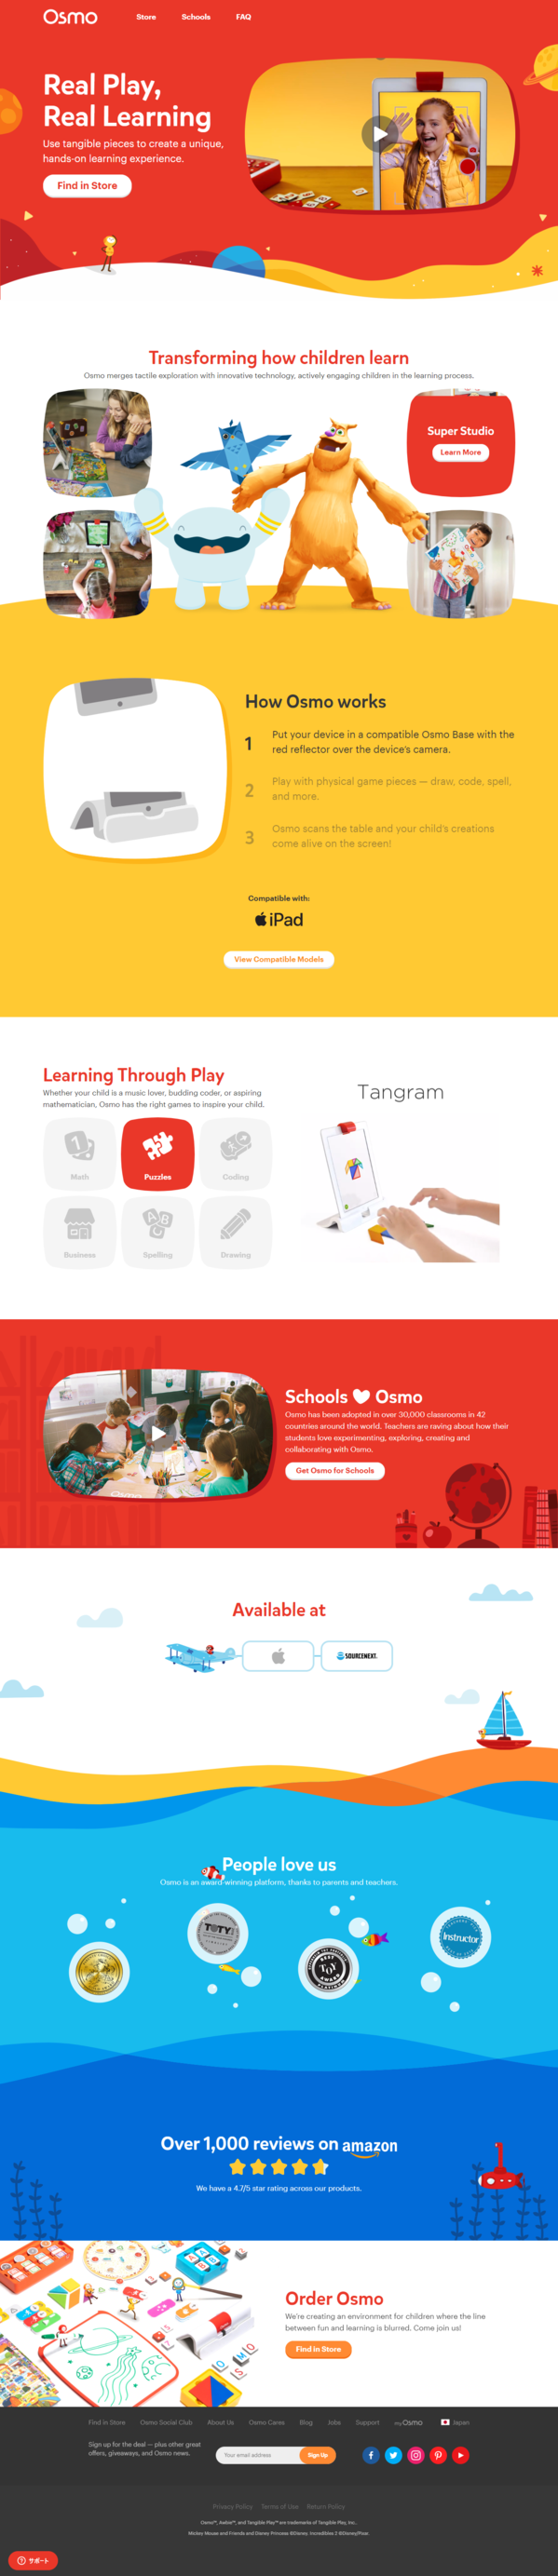 Osmo - Award-Winning Educational Games System for iPad.png